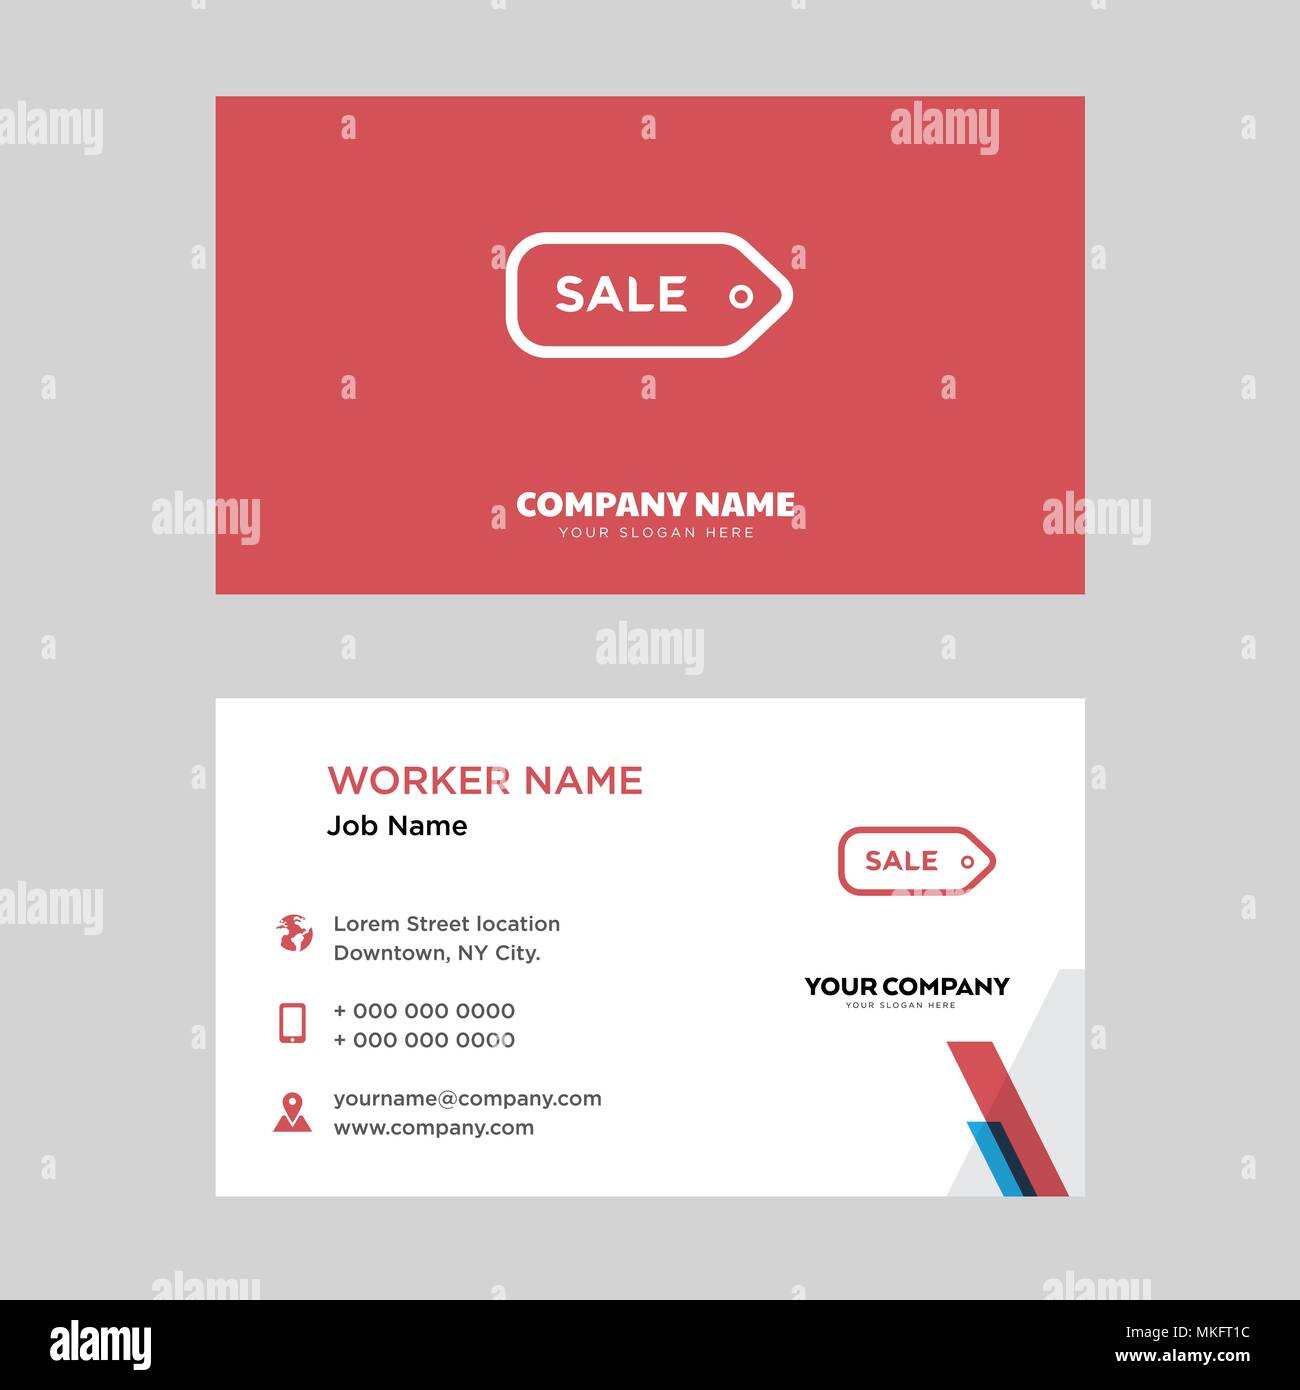 55 examples of photoshop pricing table template tech trainee.